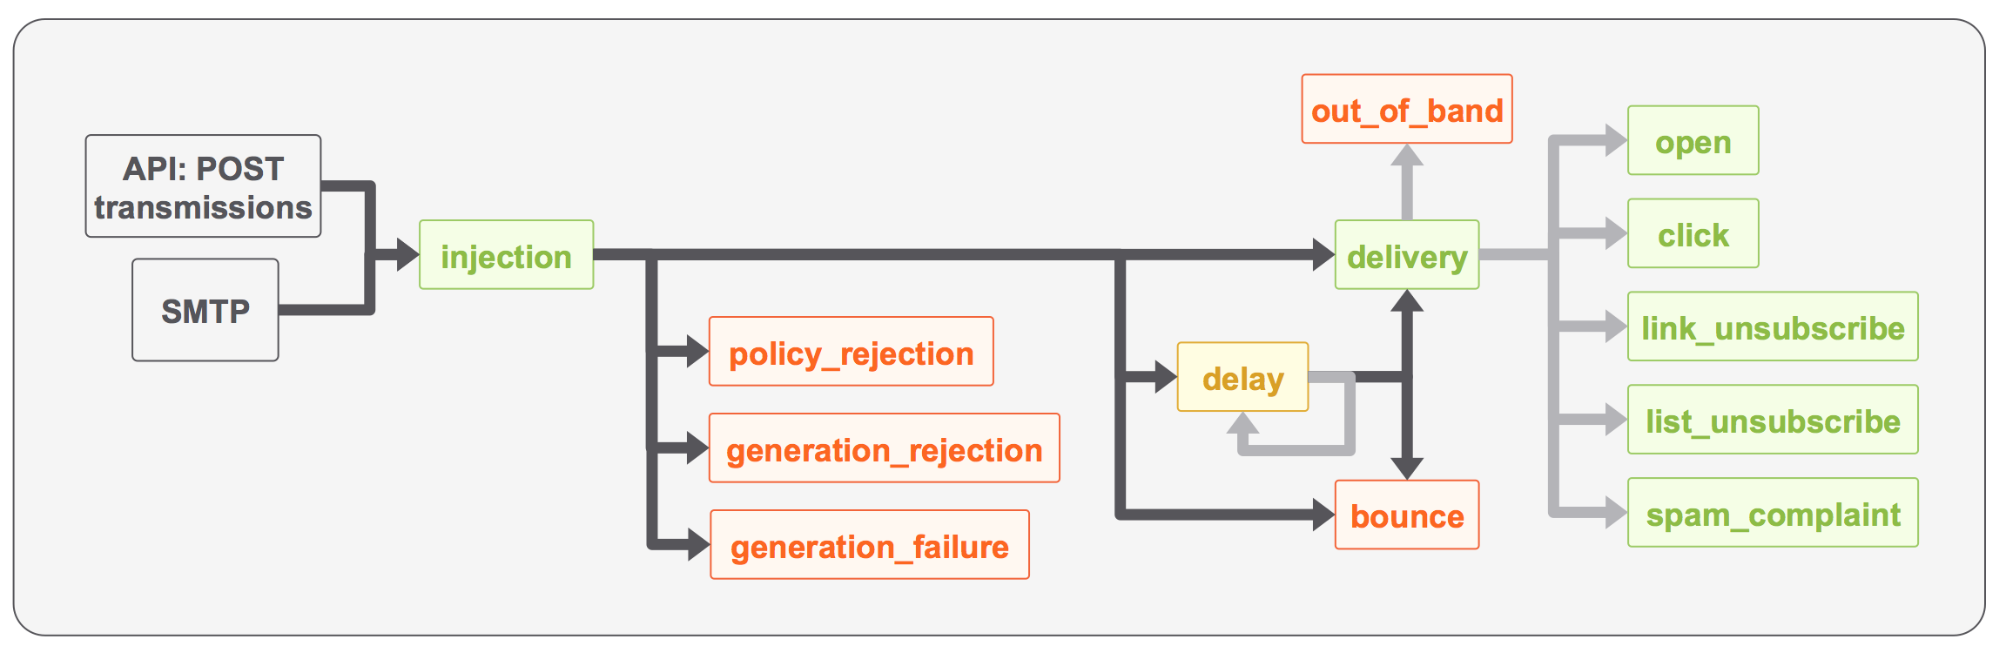 SparkPost message events in sequence